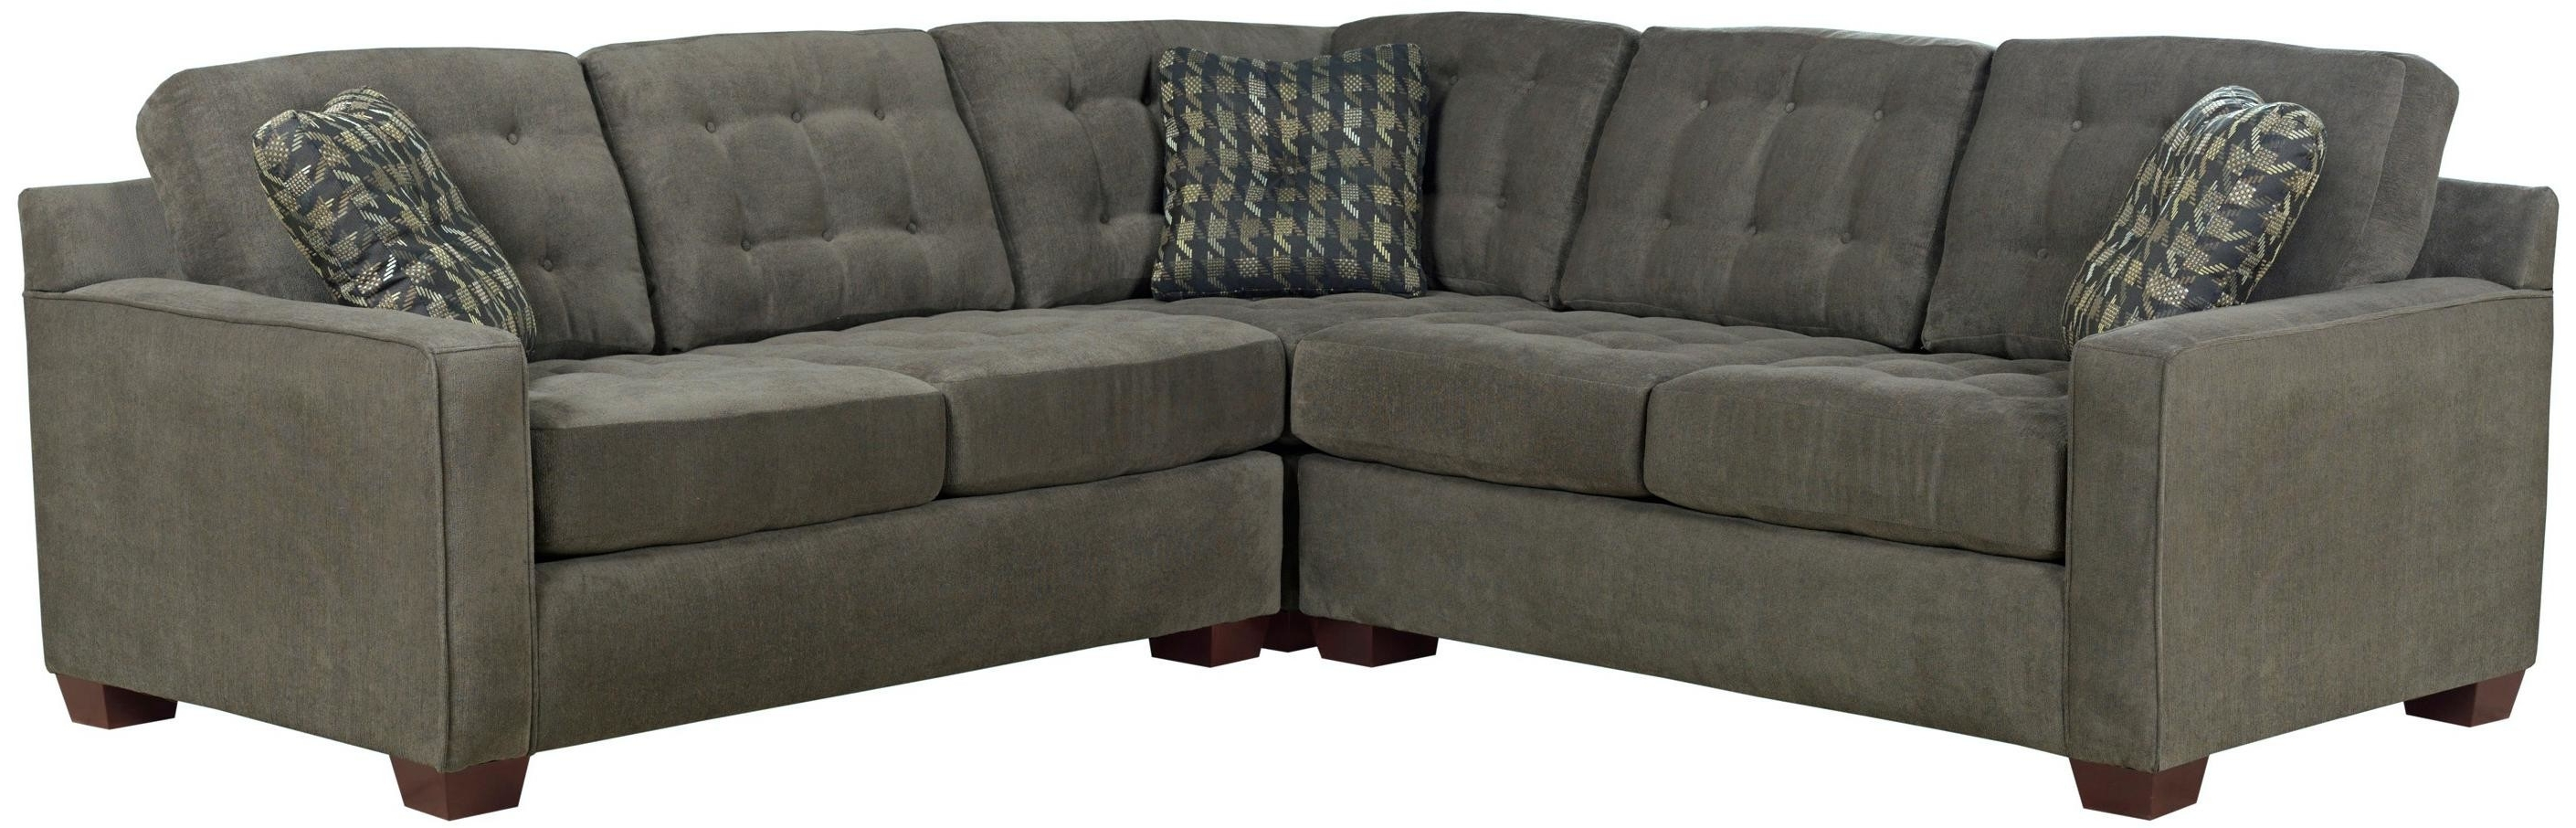 Homemakers Furniture Des Moines Iowa Throughout Most Recent Homemakers Sectional Sofas (View 4 of 20)